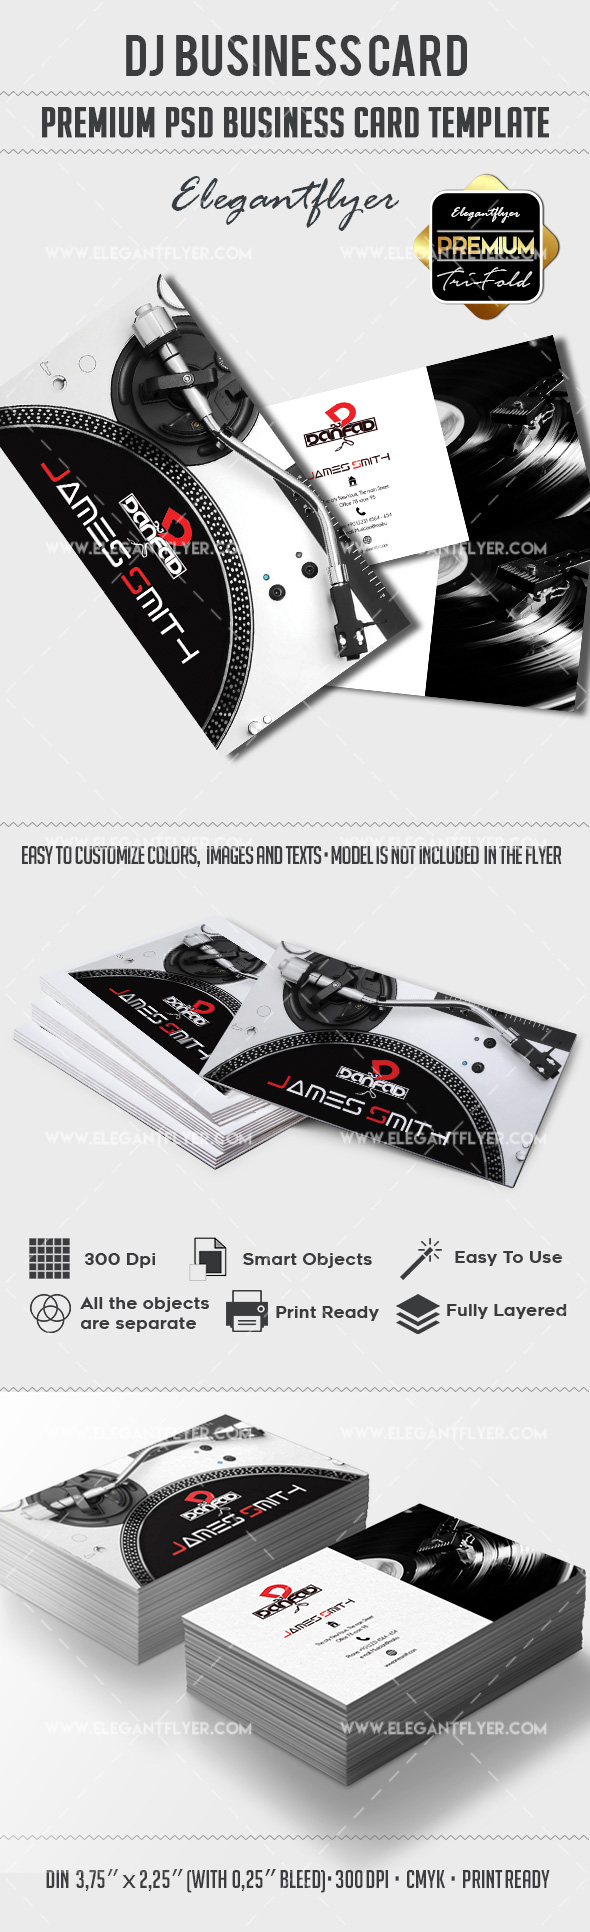 Dj premium business card psd template by elegantflyer dj premium business card psd template reheart Choice Image